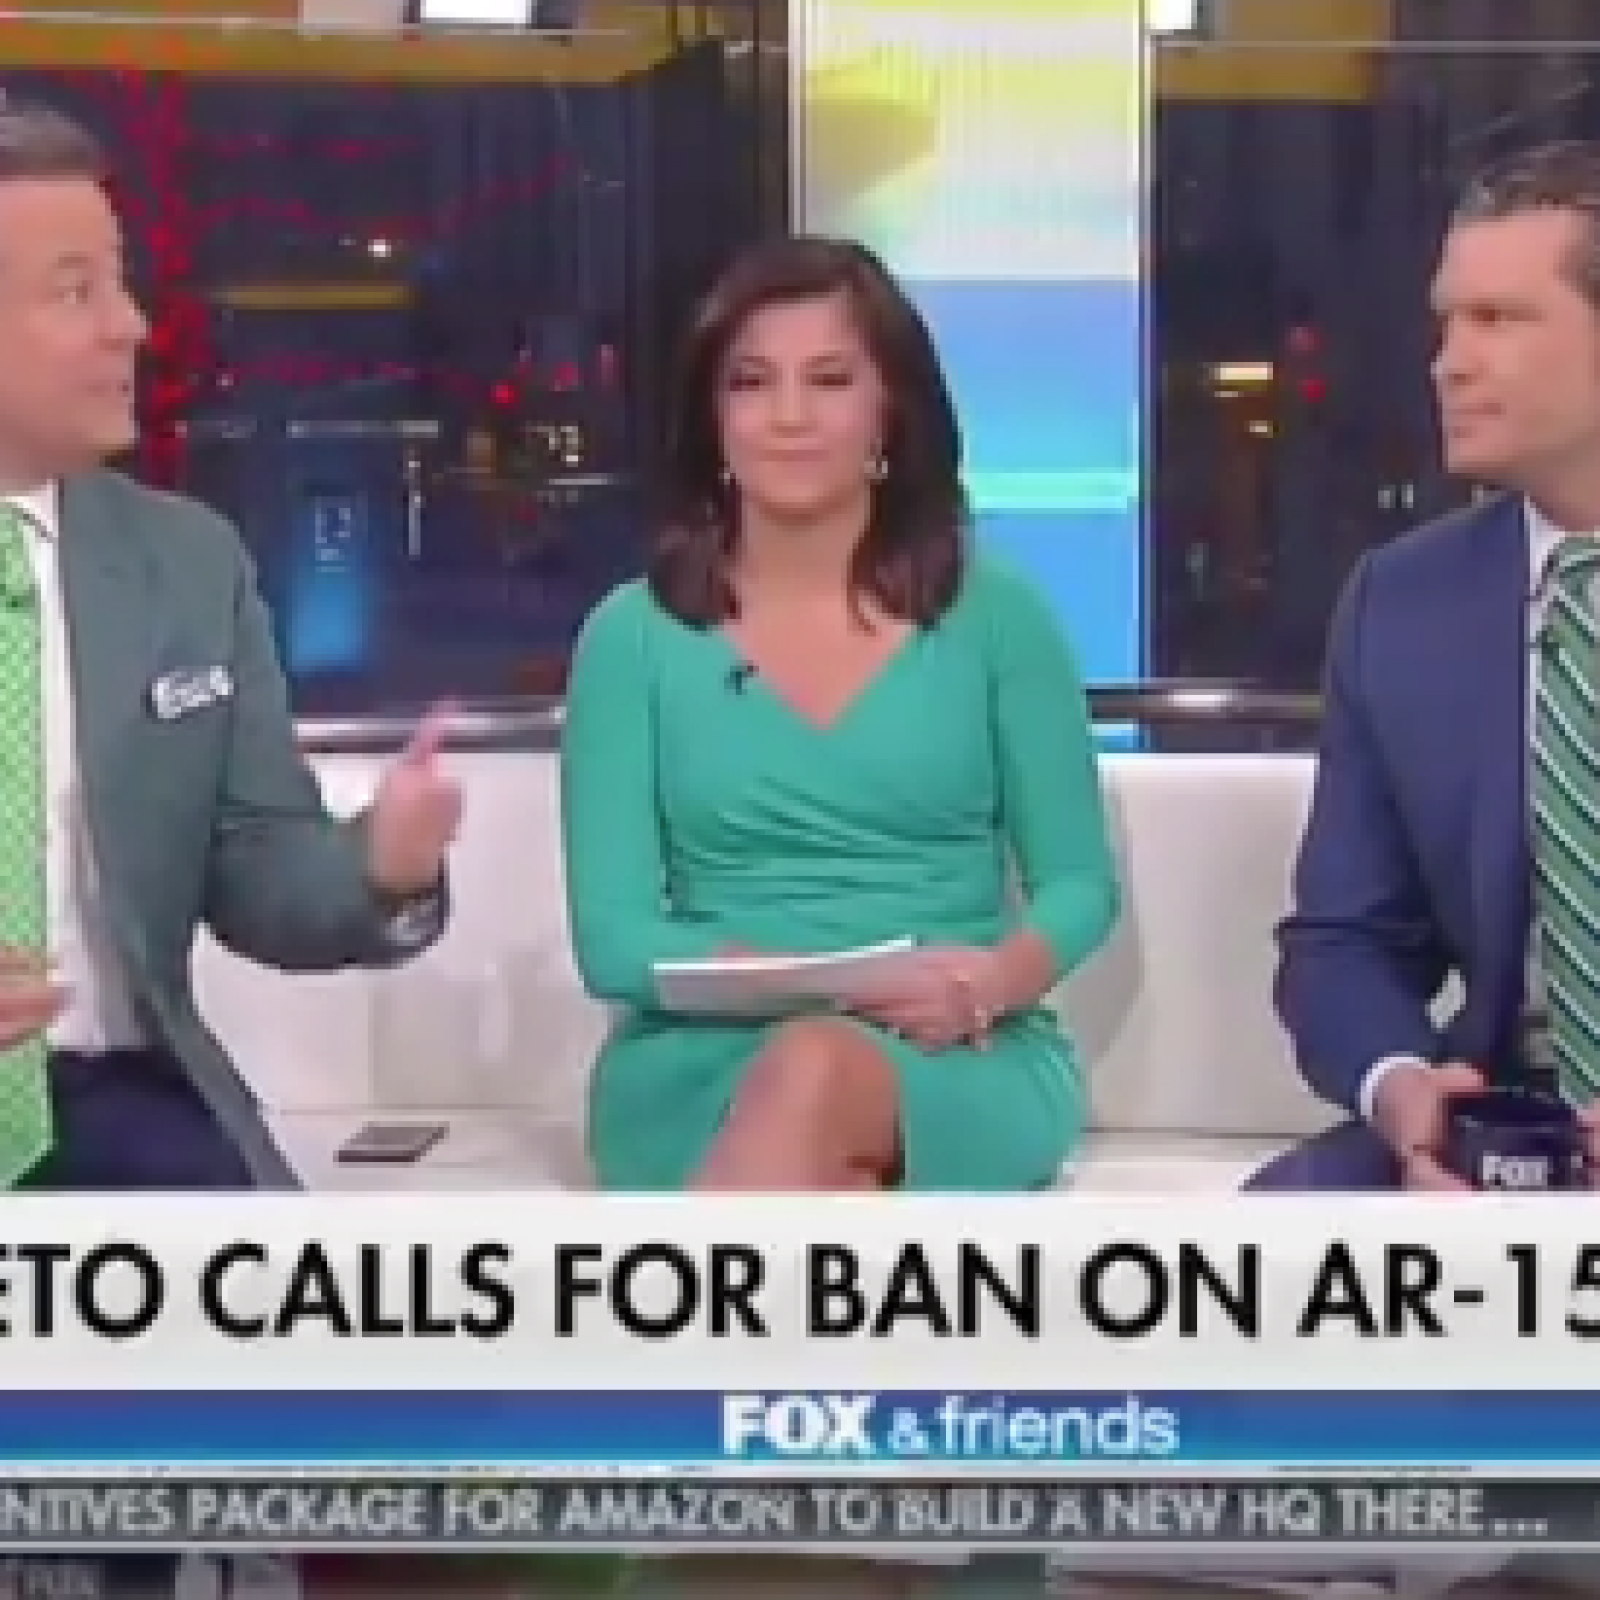 Fox News Host Urges Viewers to Stock up on AR-15s After Beto O